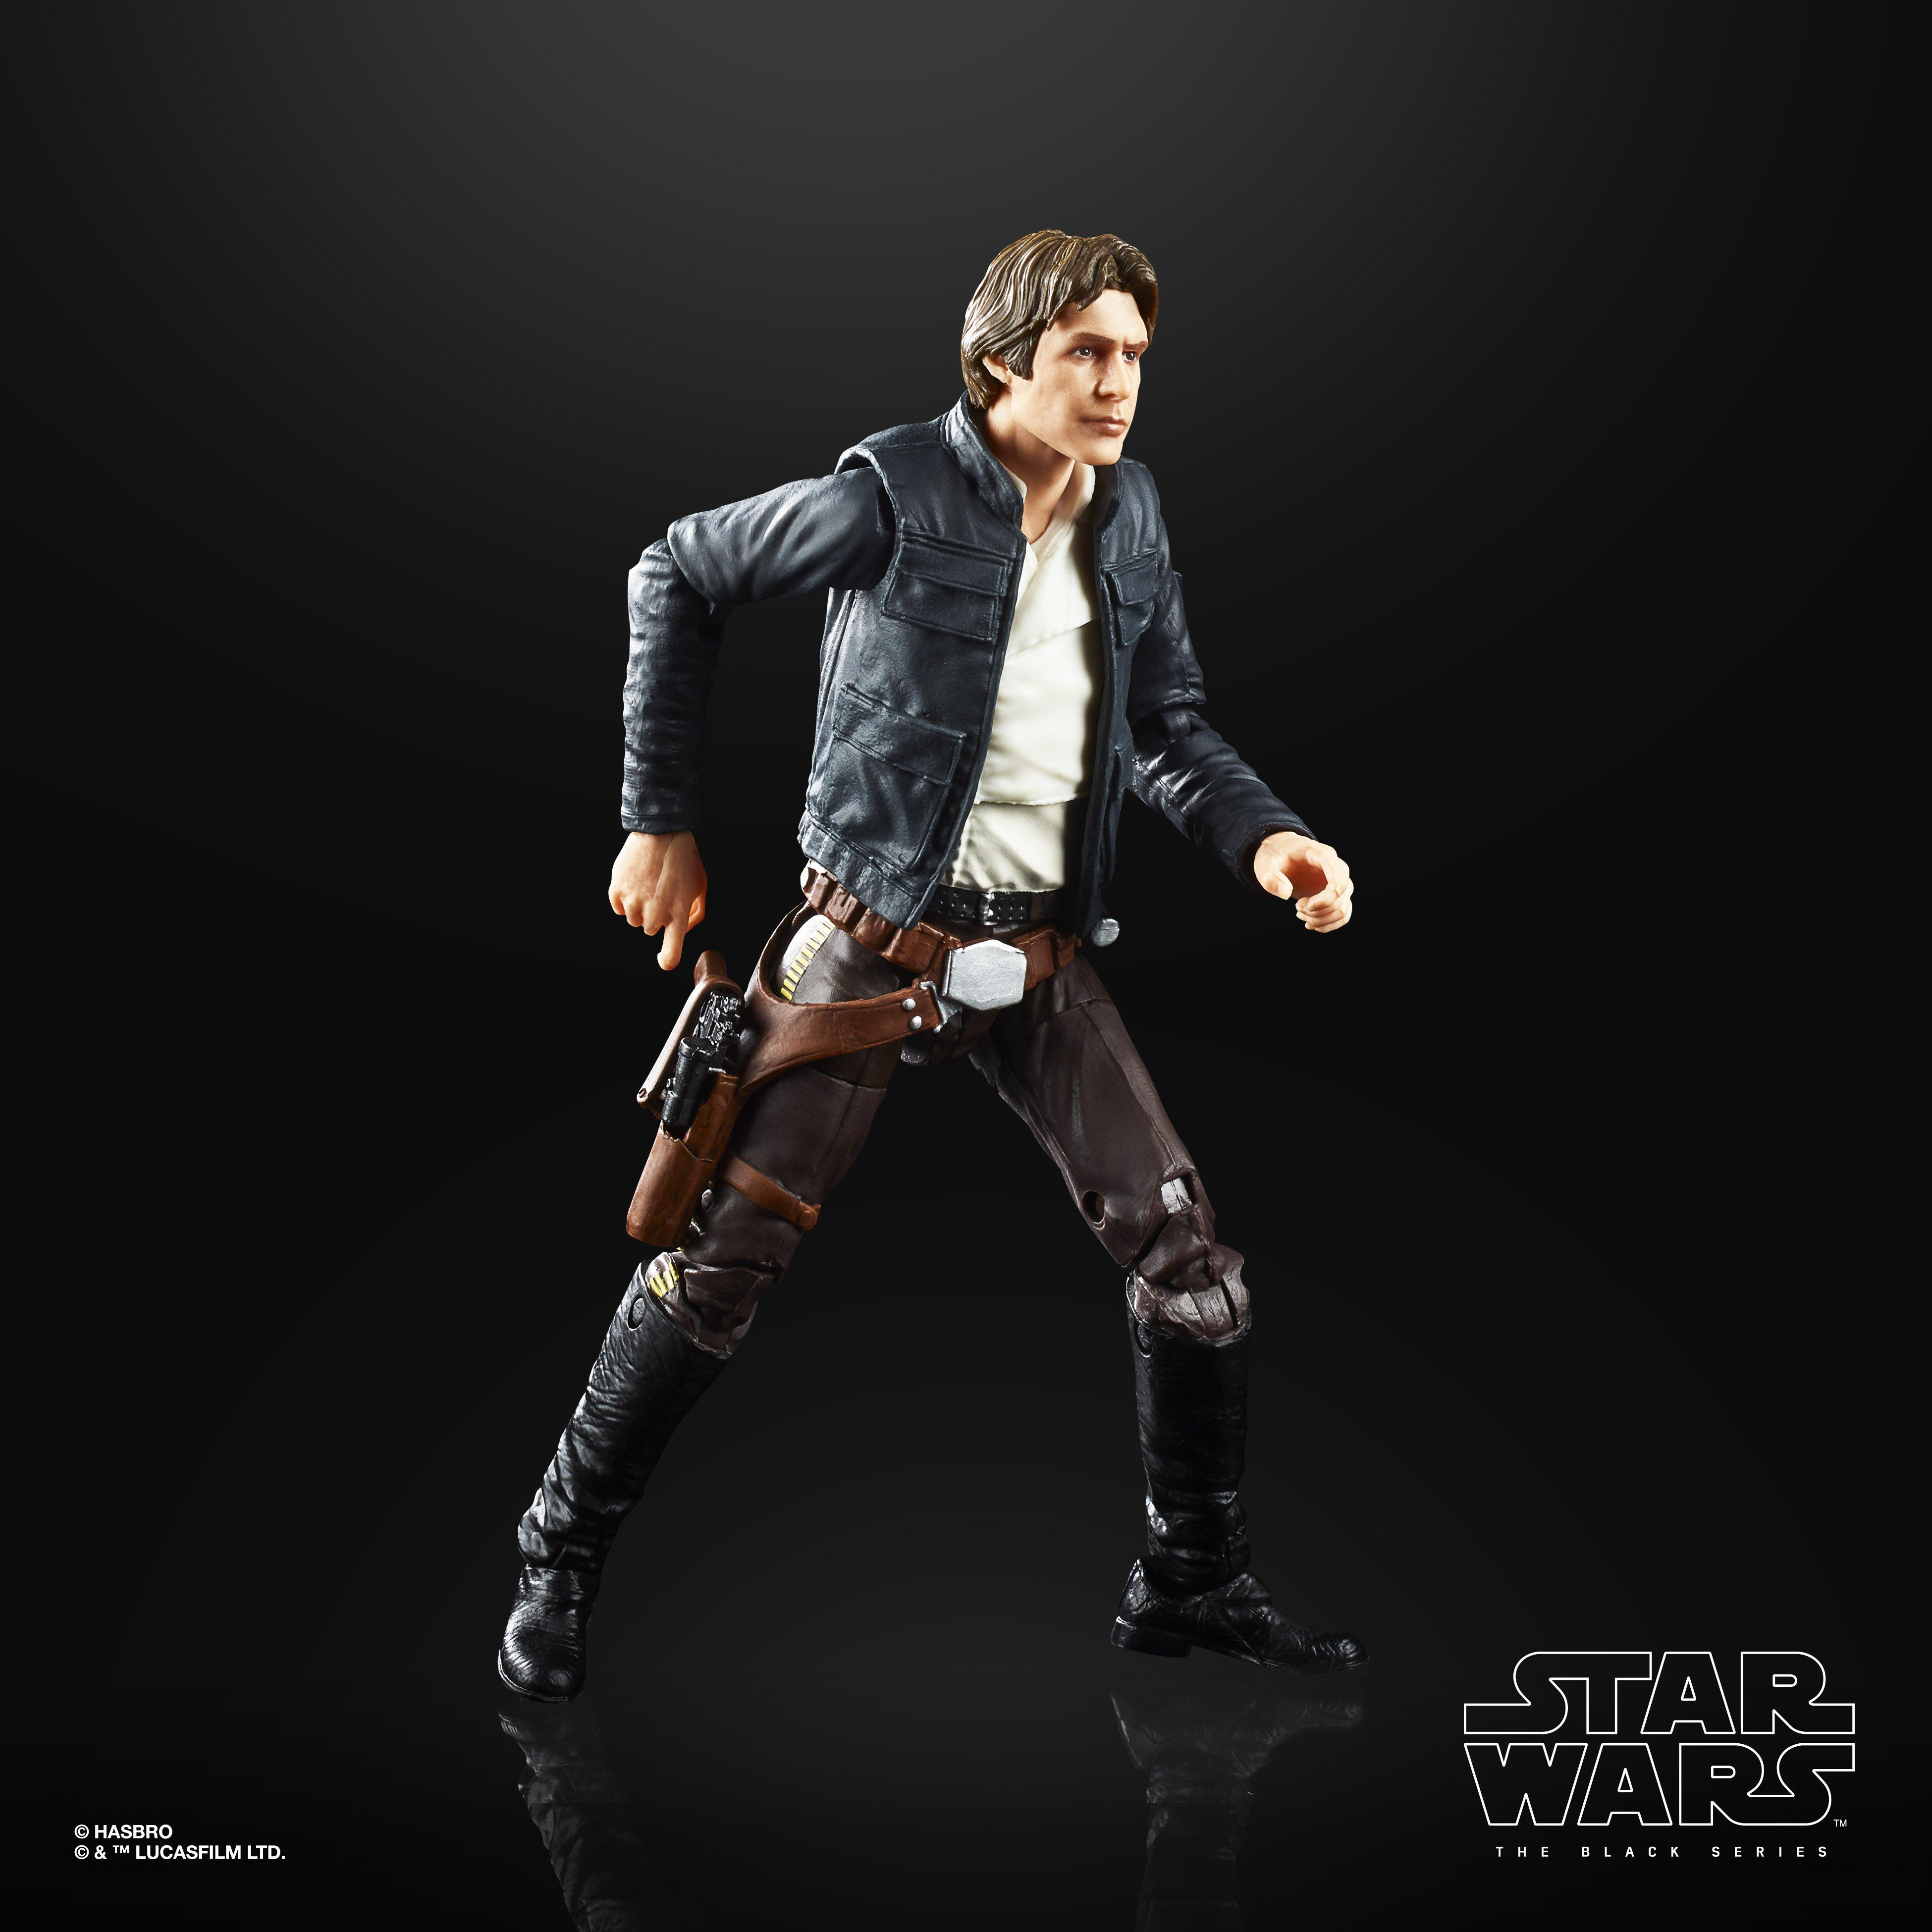 Star Wars Episode V The Empire Strikes Back 40th Anniversary Han Solo Bespin Action Figure Gamestop